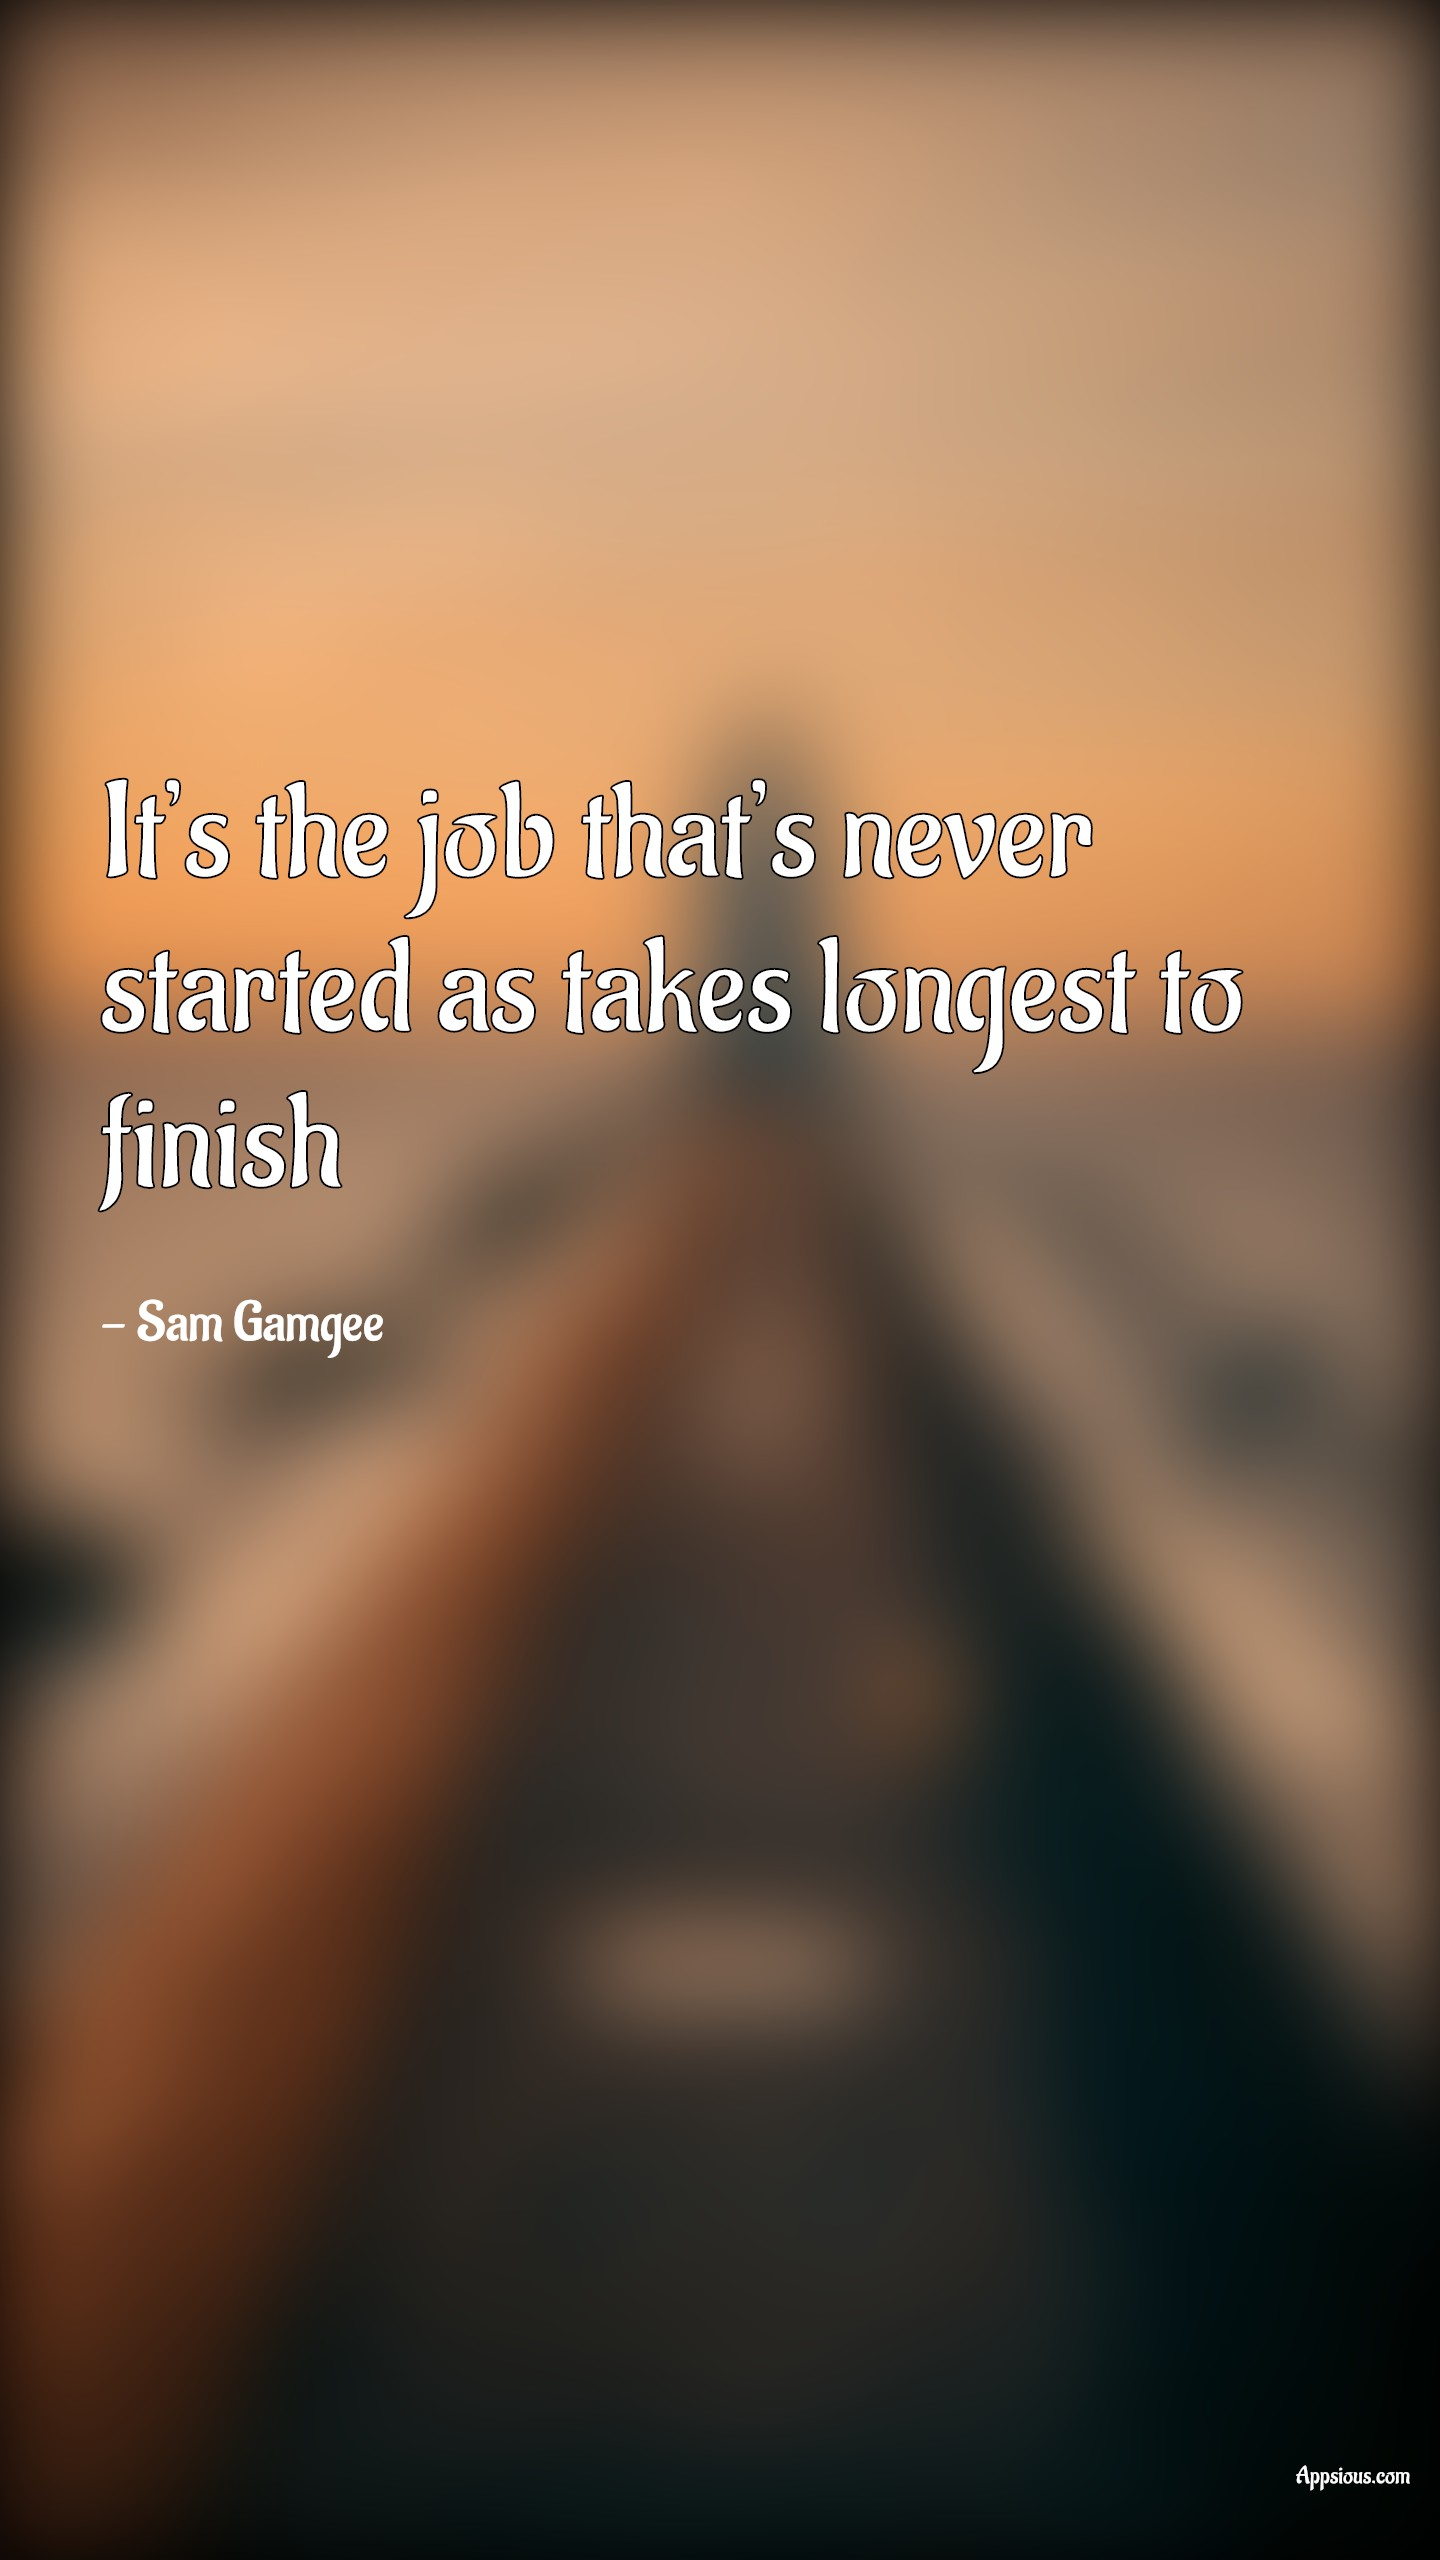 It's the job that's never started as takes longest to finish